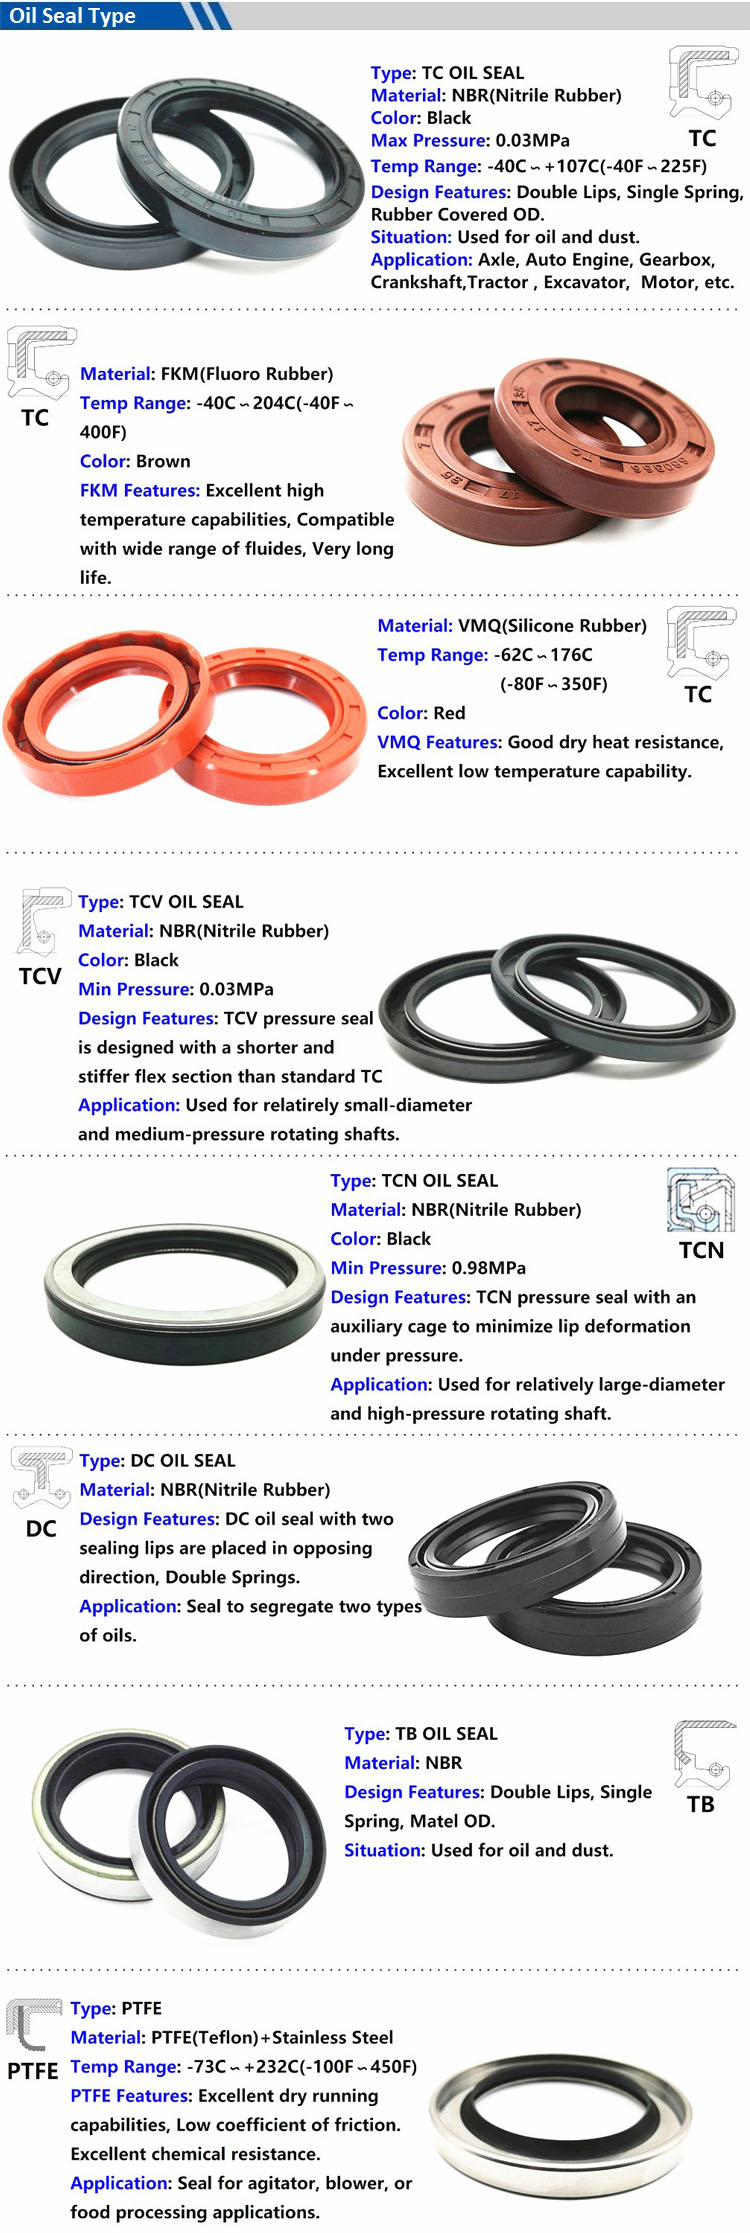 Factory Hot Sales National Oil Seal Size Chart Rubber Oil Seal With Custom  Sizes And Colors - Buy Rubber Oil Seal,National Oil Seal Size Chart Oil